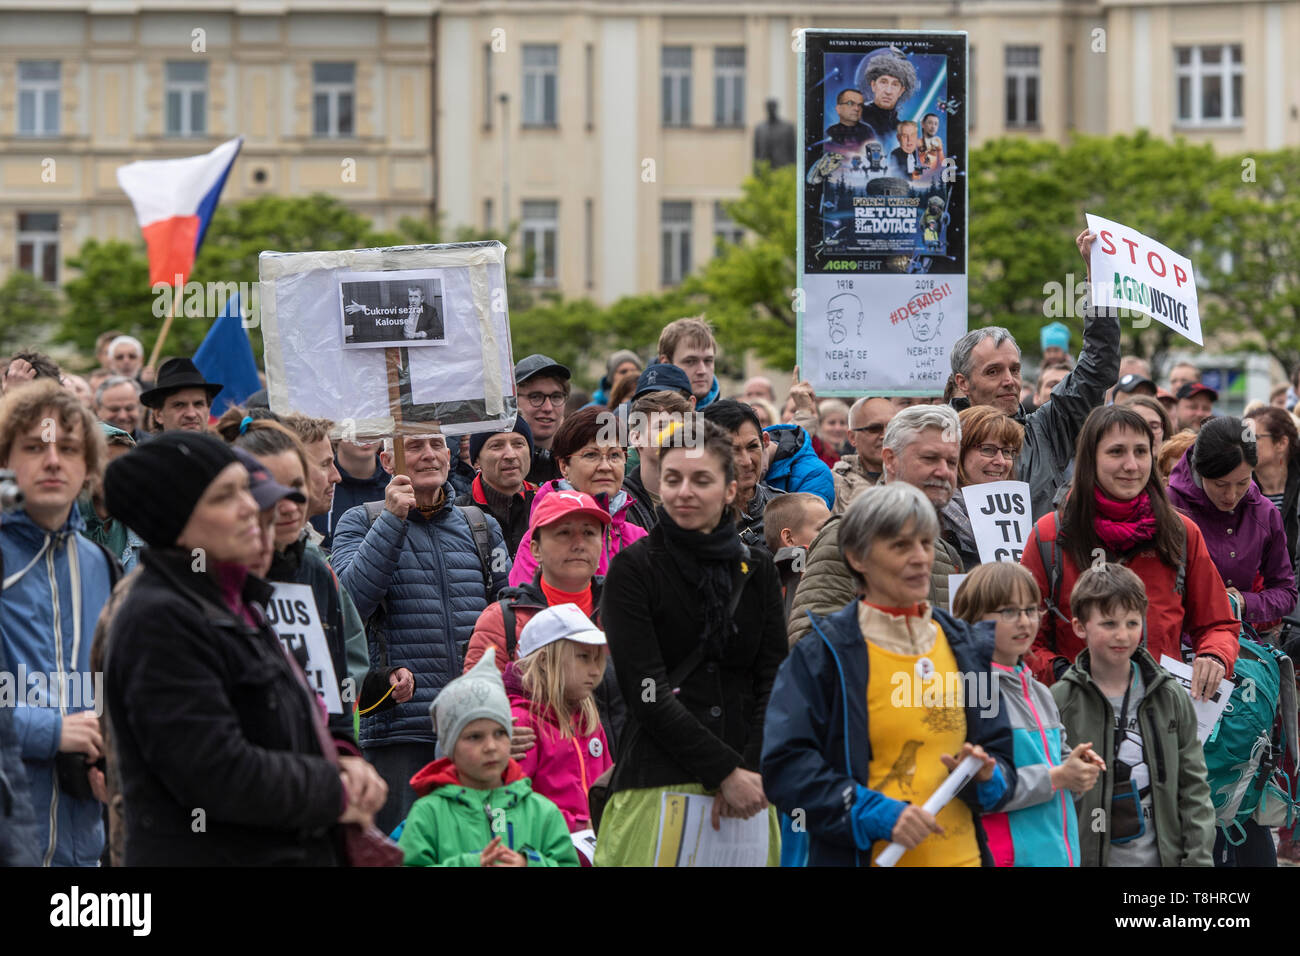 Hradec Kralove, Czech Republic. 13th May, 2019. People attend demonstration against PM Babis and new Justice Minister Benesova in the centre of Hradec Kralove, Czech Republic, May 13, 2019. Credit: David Tanecek/CTK Photo/Alamy Live News Stock Photo